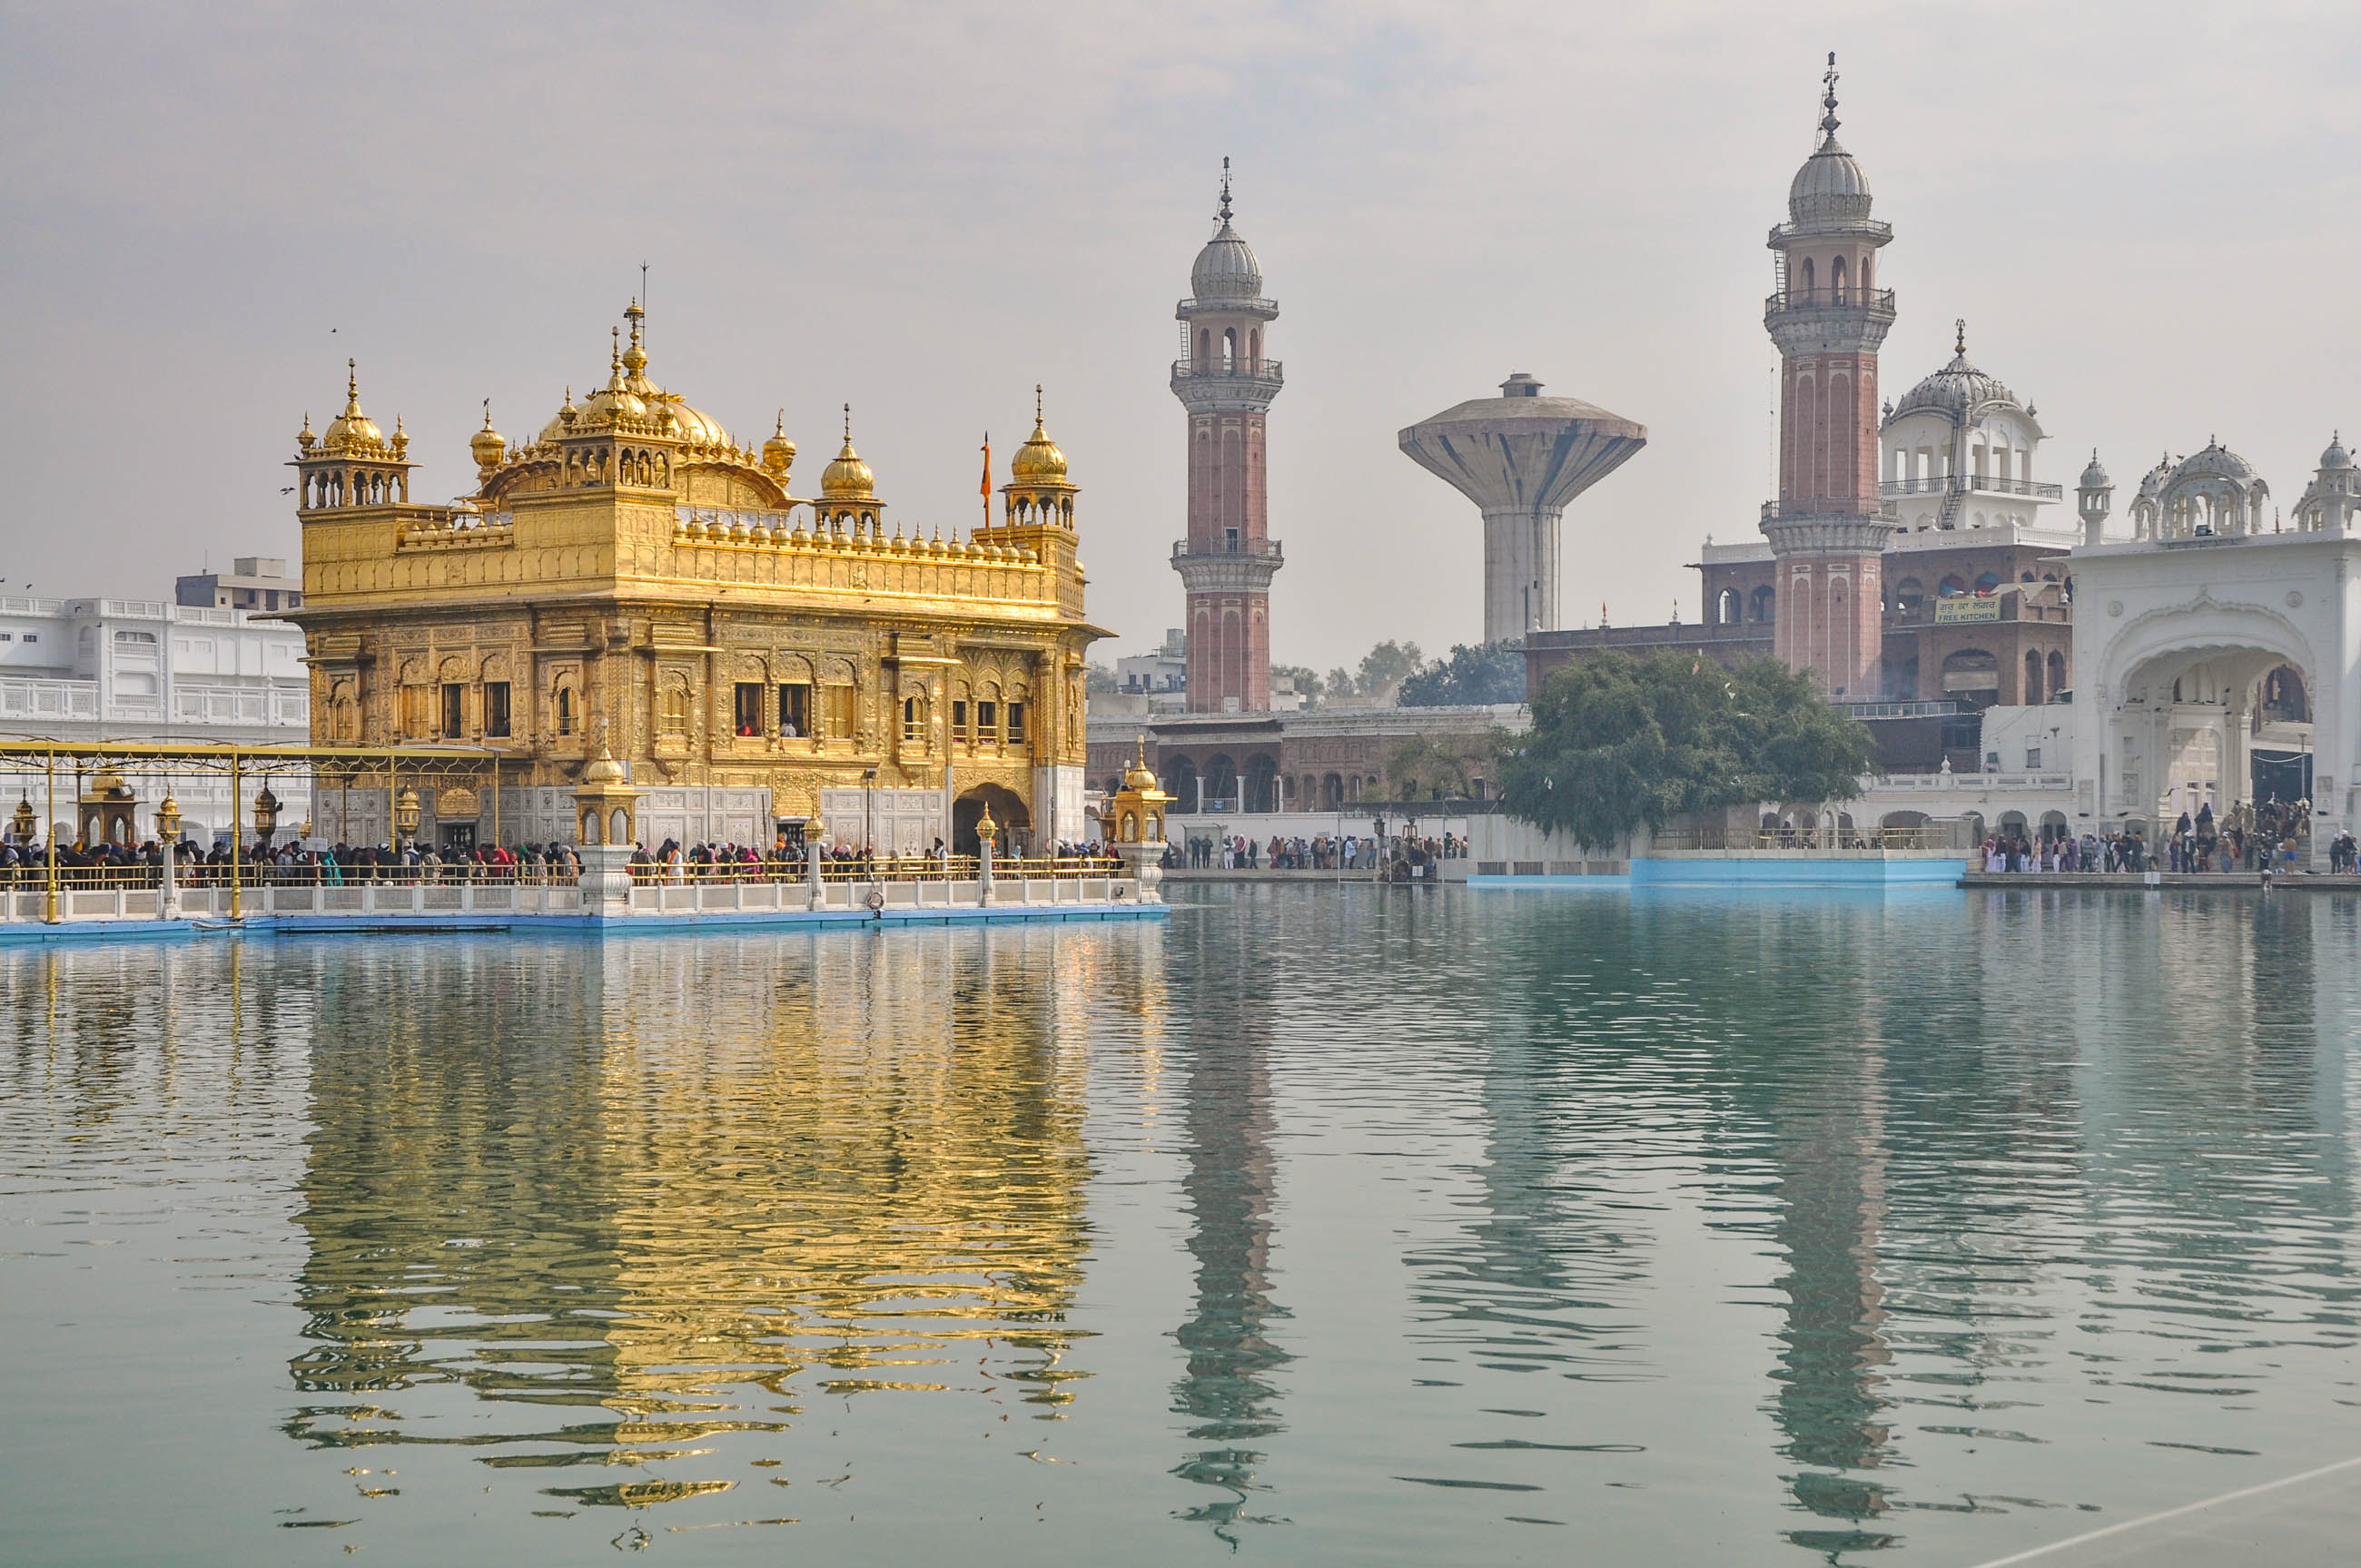 https://bubo.sk/uploads/galleries/4920/tomas_kubus_india_amritsar_dsc_0143.jpg